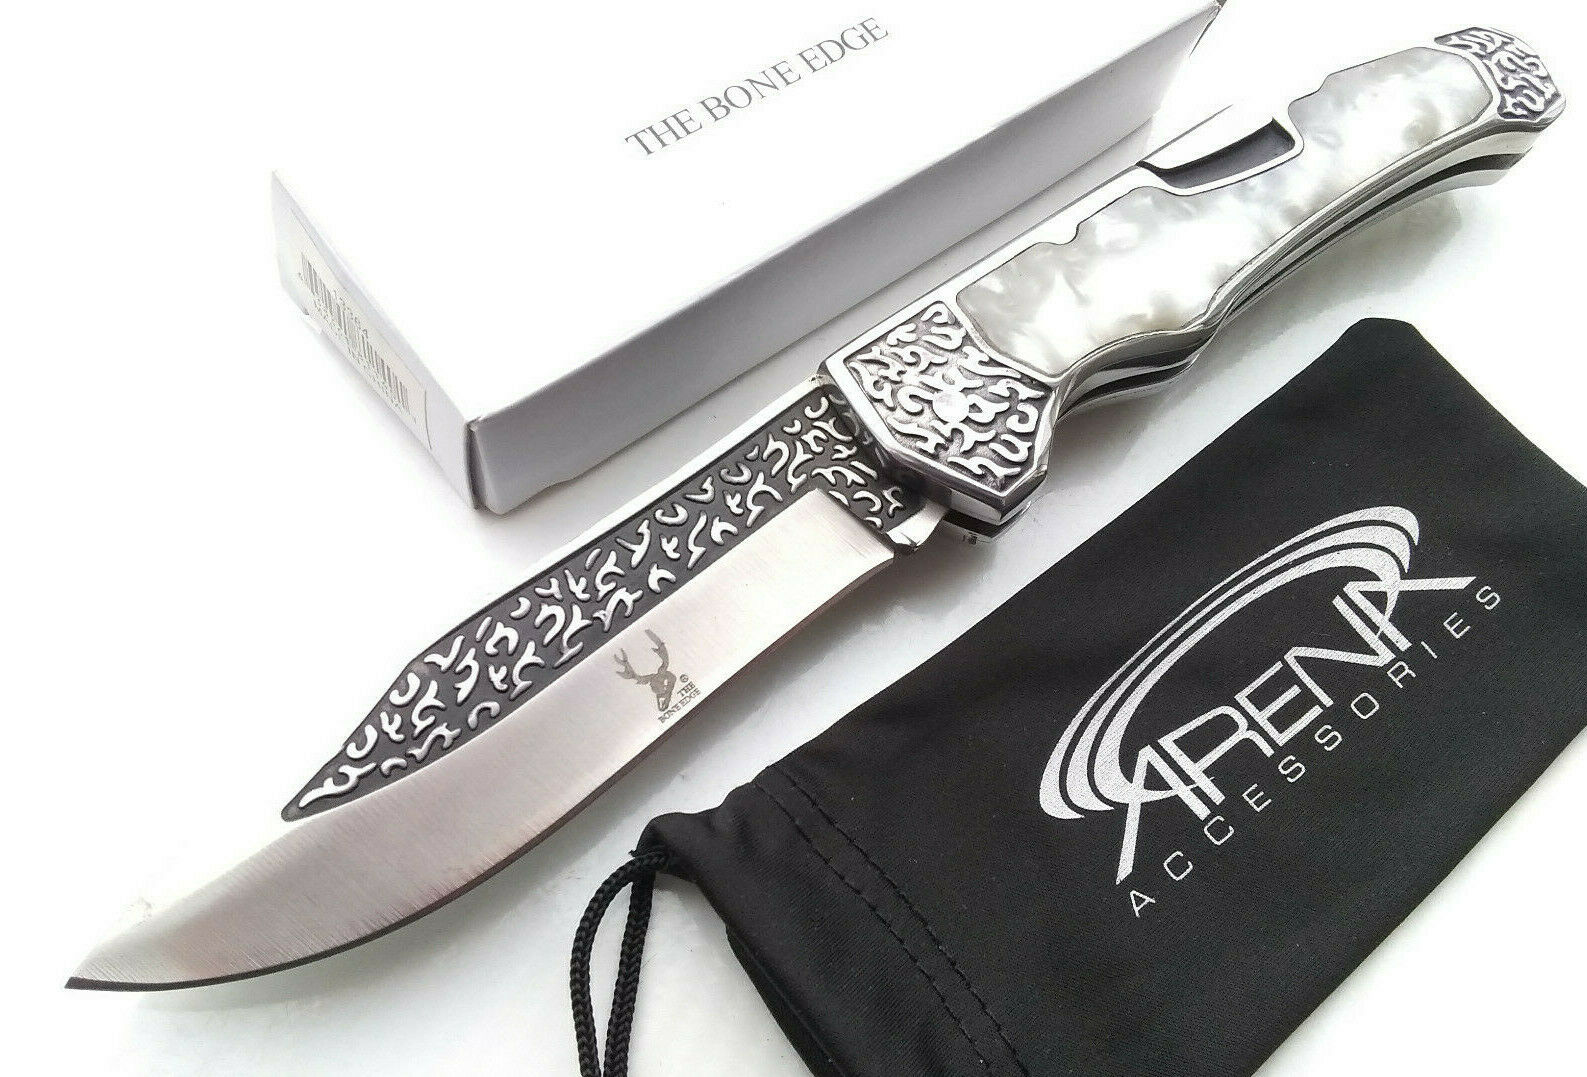 The Bone Edge Handmade Scalloped Manual Open Lockback Pocket Knife 3CR13 Steel Honeysuckle Engraved Pearl Handle EDC